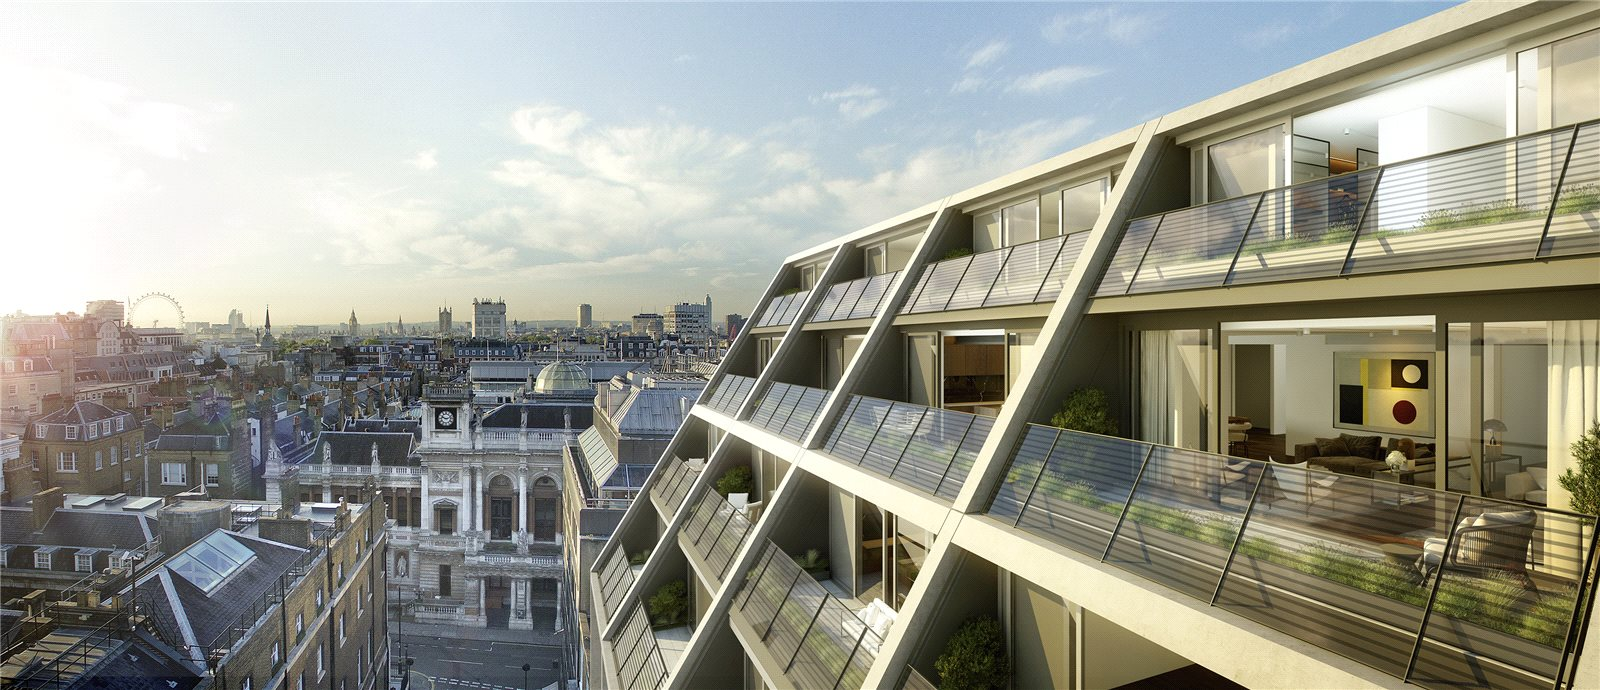 Additional photo for property listing at cork street mayfair london w1s mayfair